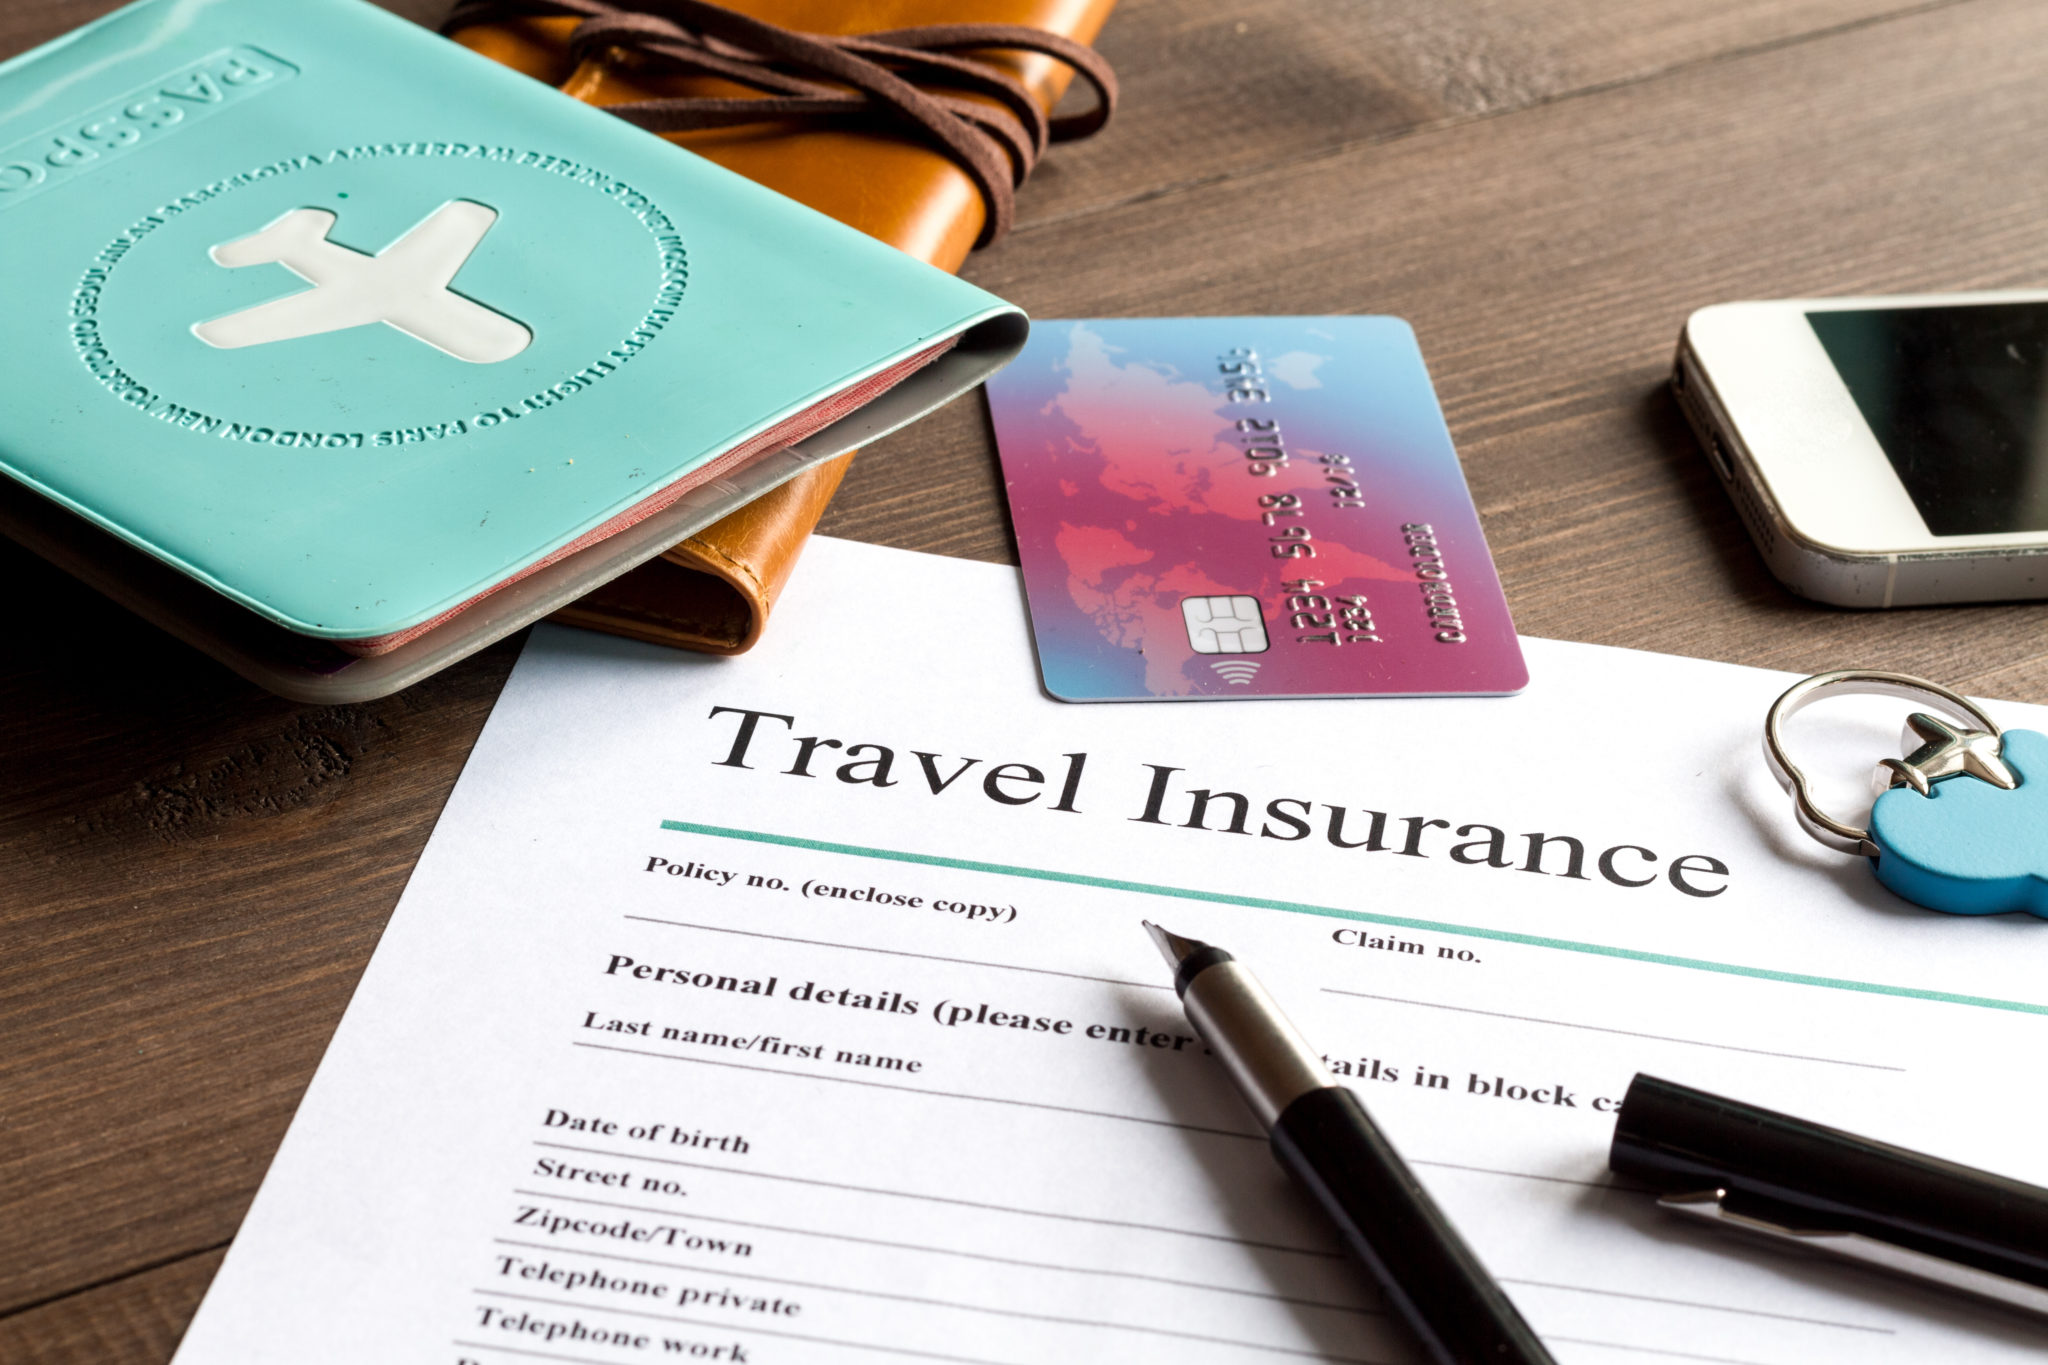 Americanexpress Com Delta >> American Express Cards Travel Insurance Benefits Guide 2019